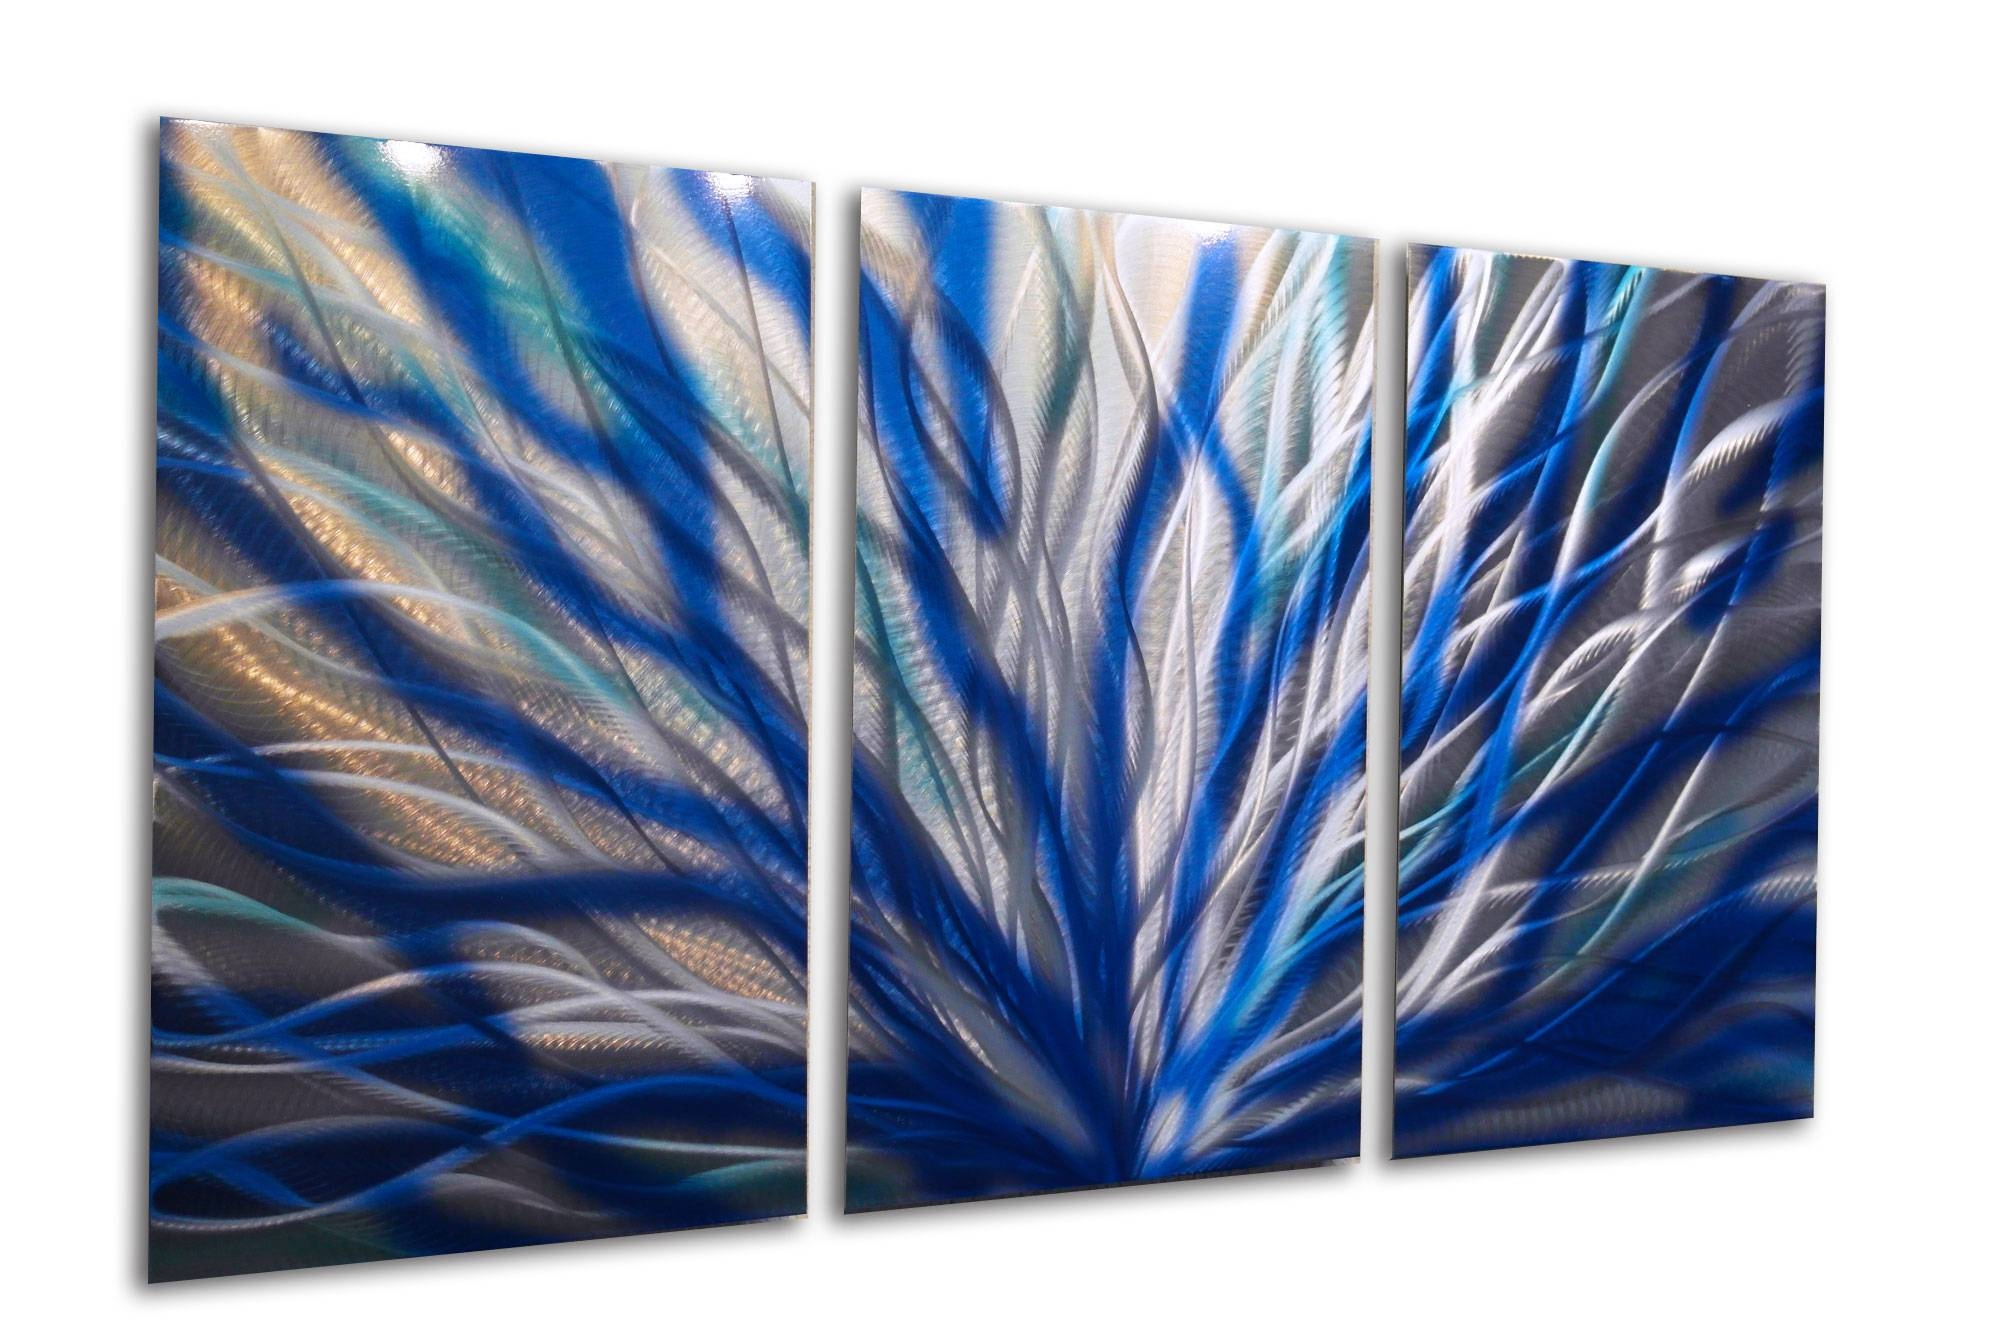 Radiance Blue 47 V2 – Metal Wall Art Abstract Sculpture Modern Within Most Recent Blue Wall Art (Gallery 10 of 20)